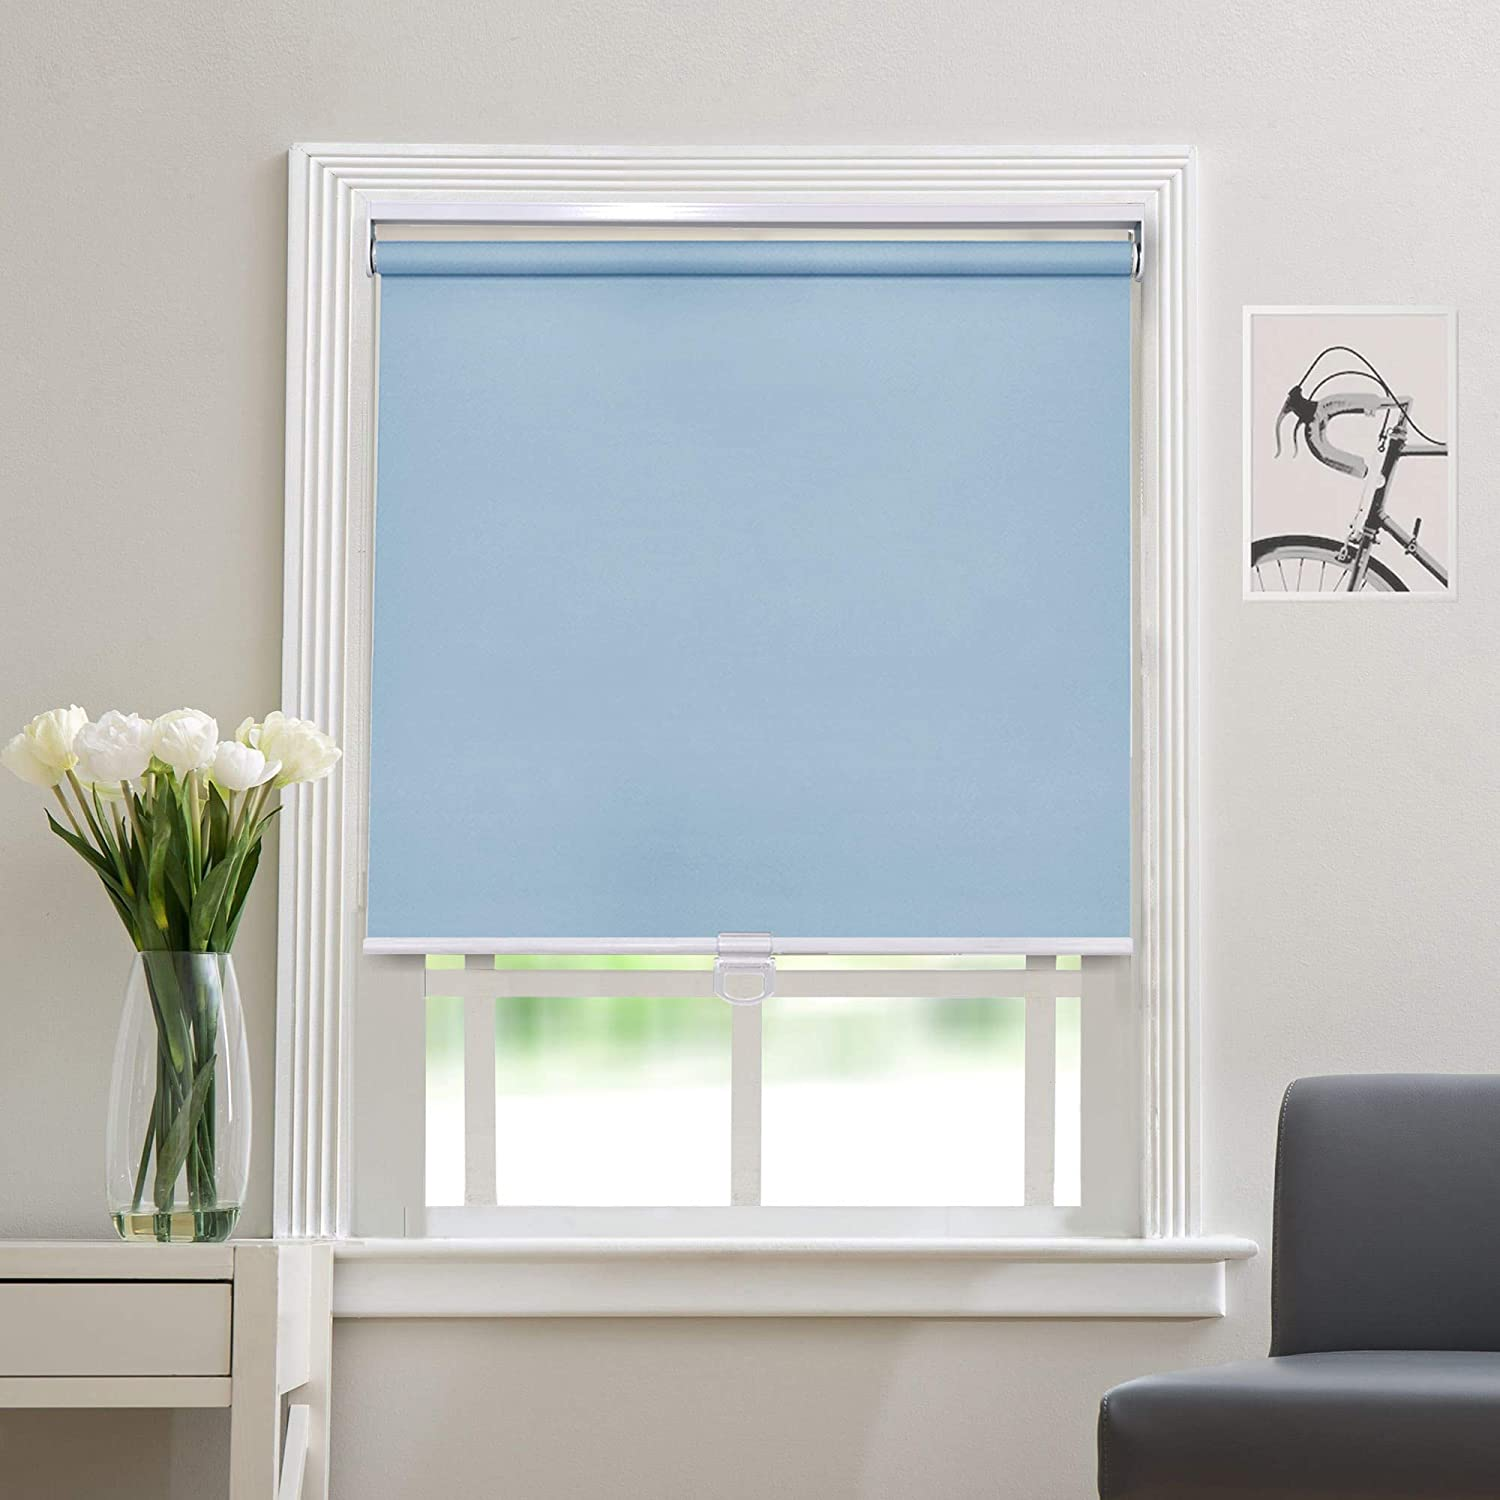 Blackout Cordless Roller Blinds and Windows Seasonal Max 87% OFF Wrap Introduction - Shades for Safety